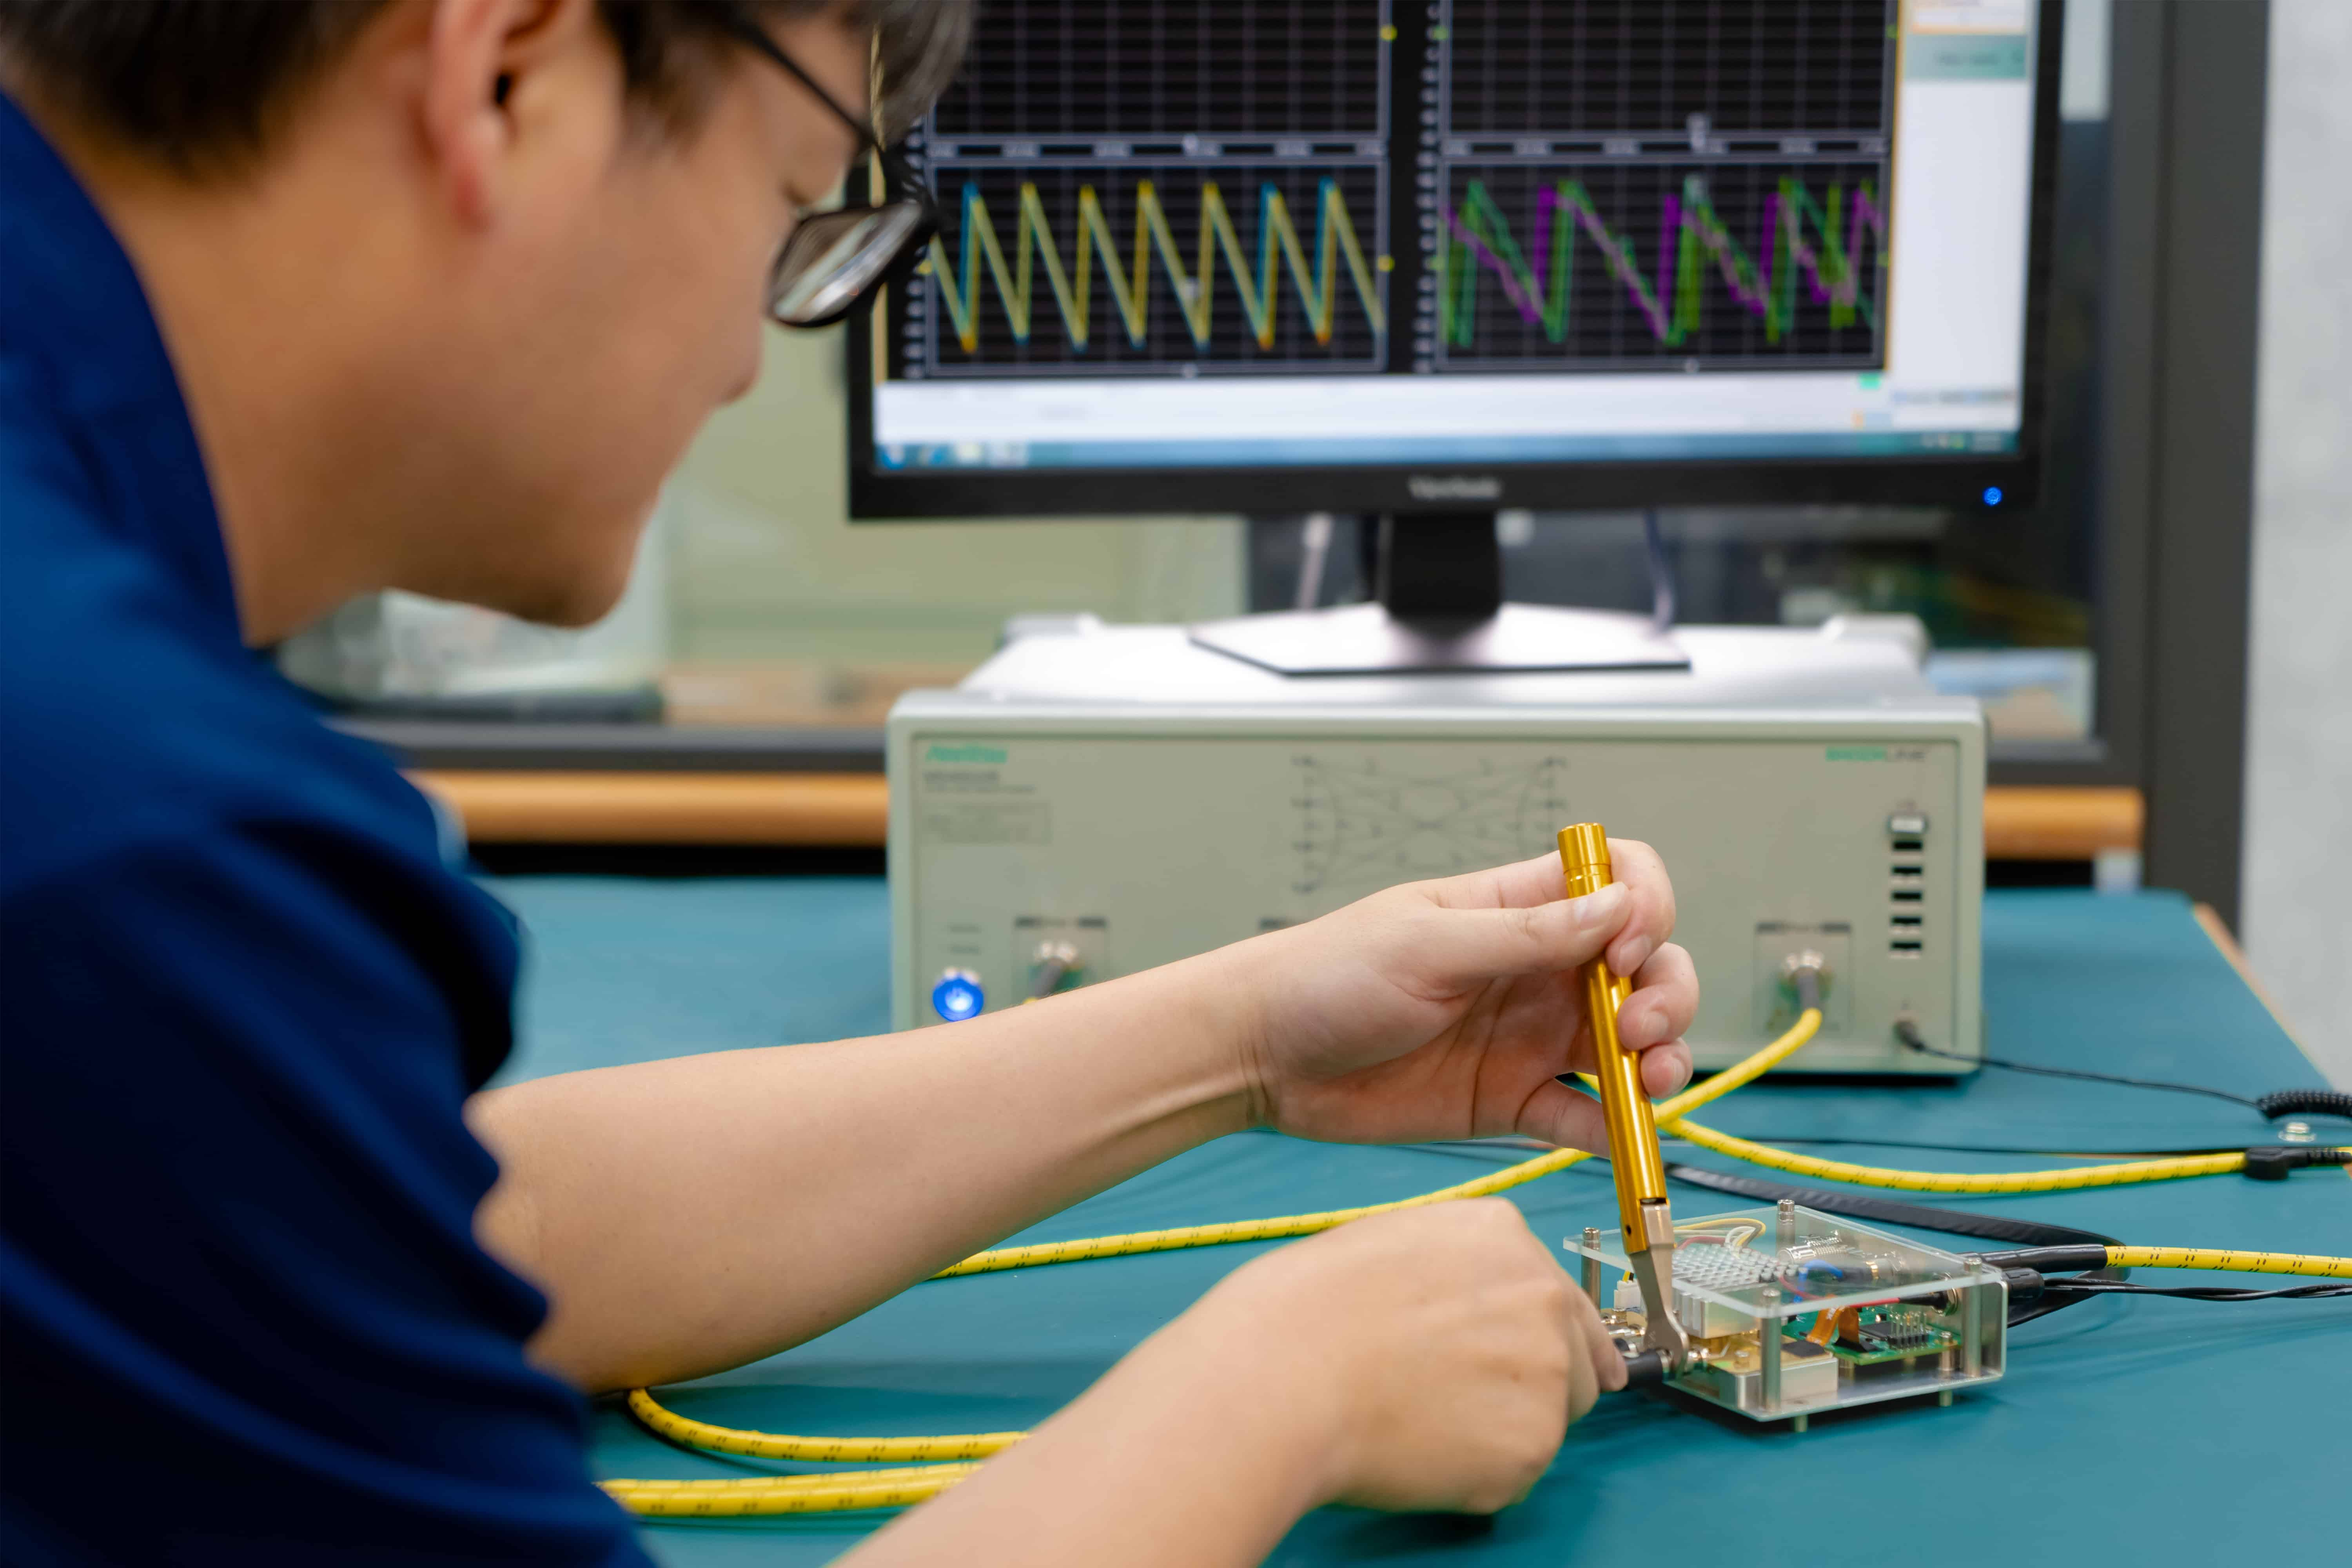 Student in a lab with the Board, running tests.